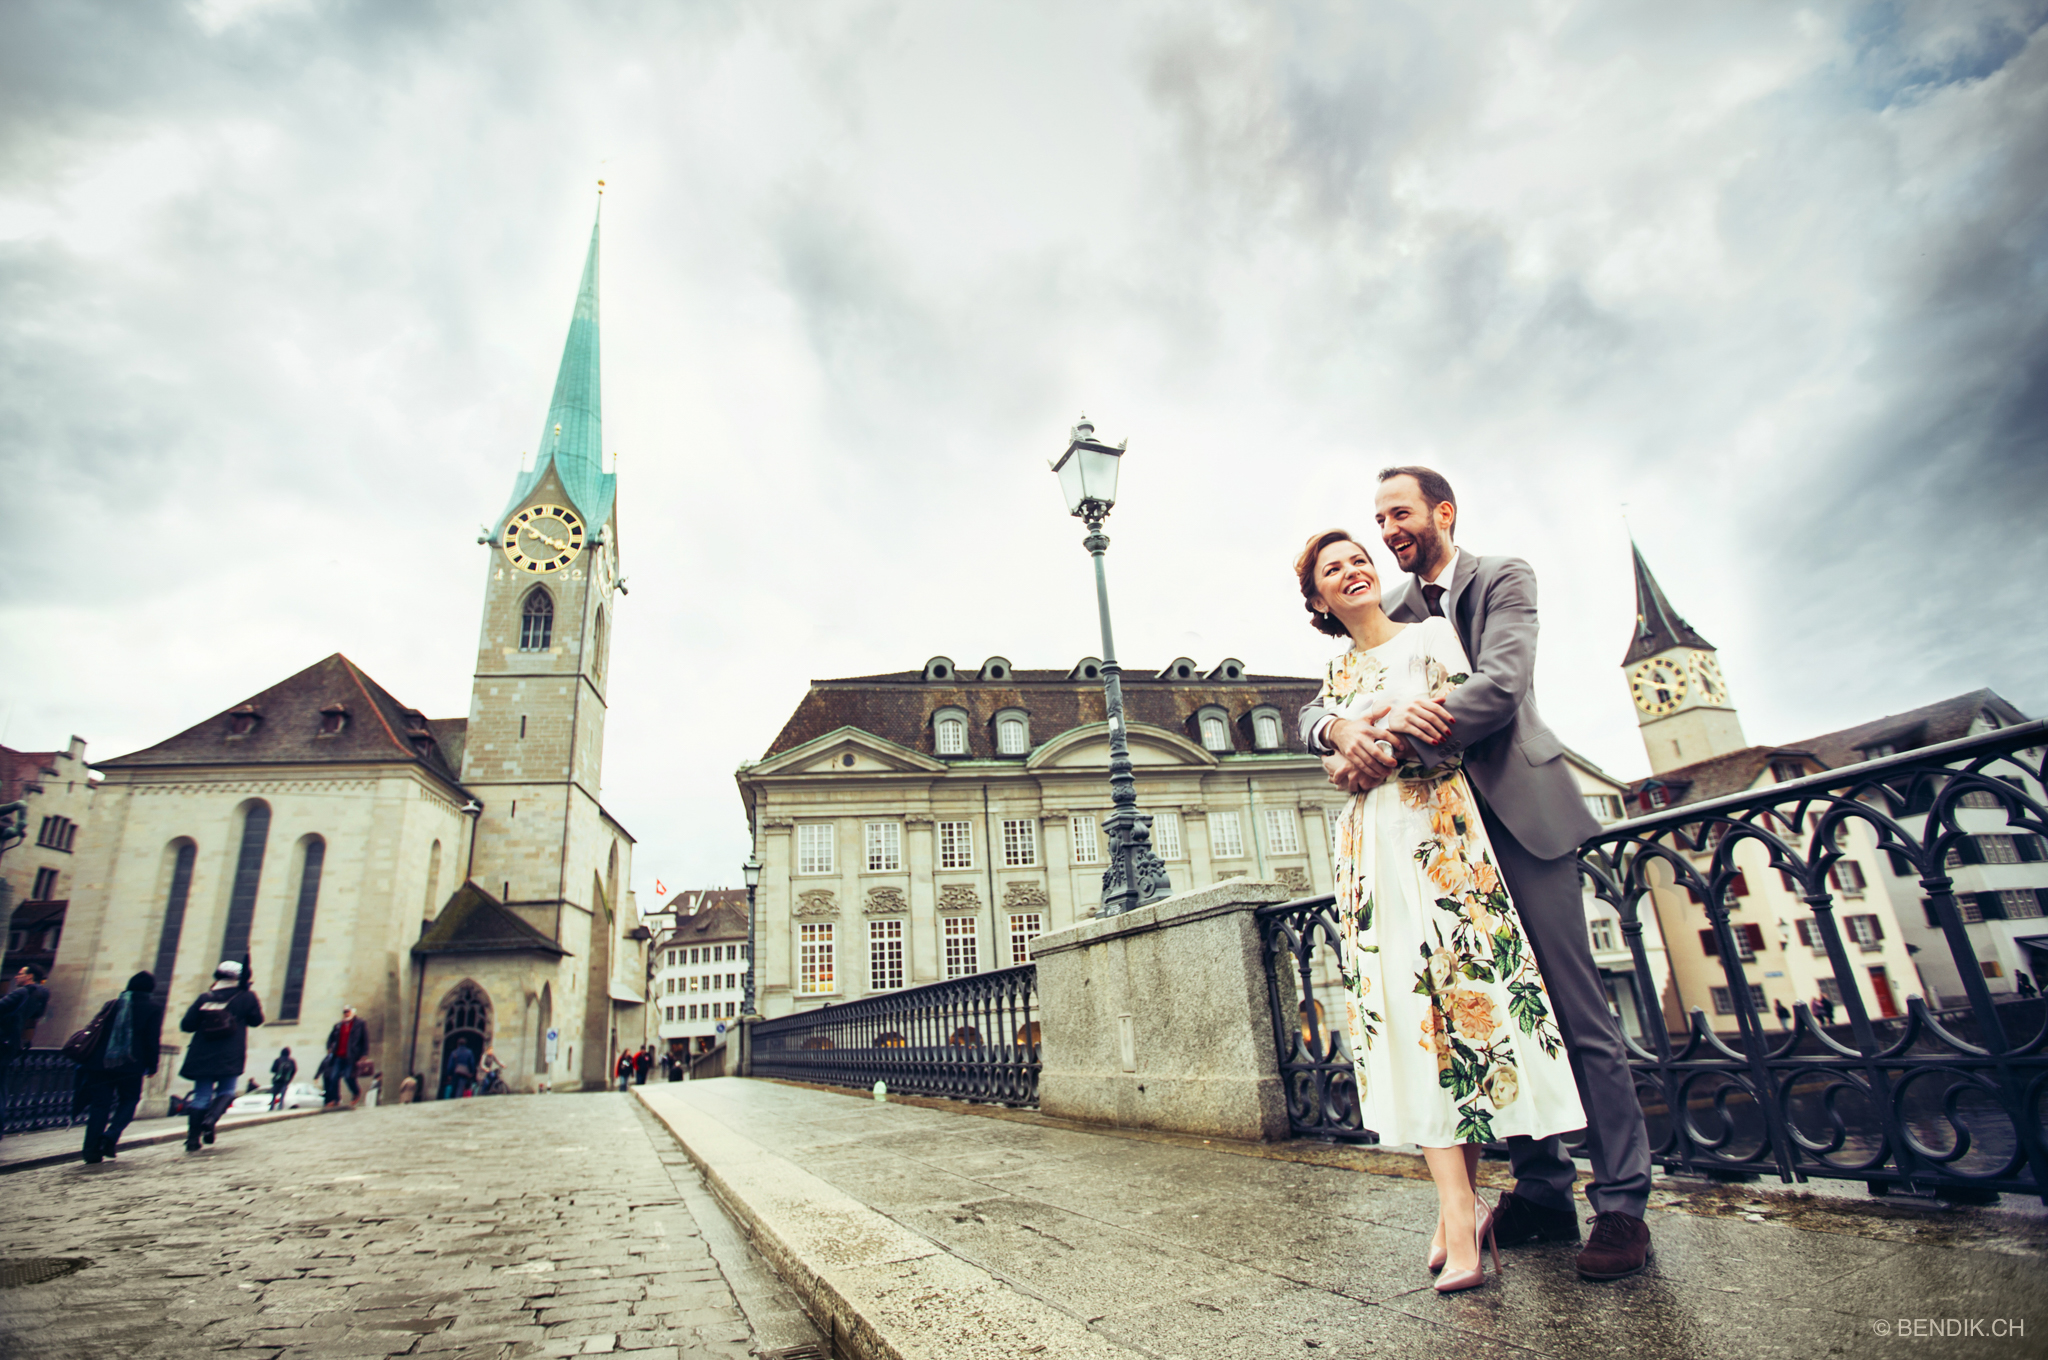 s_wedding_photoshoot_zurich_s_a_20161118_080